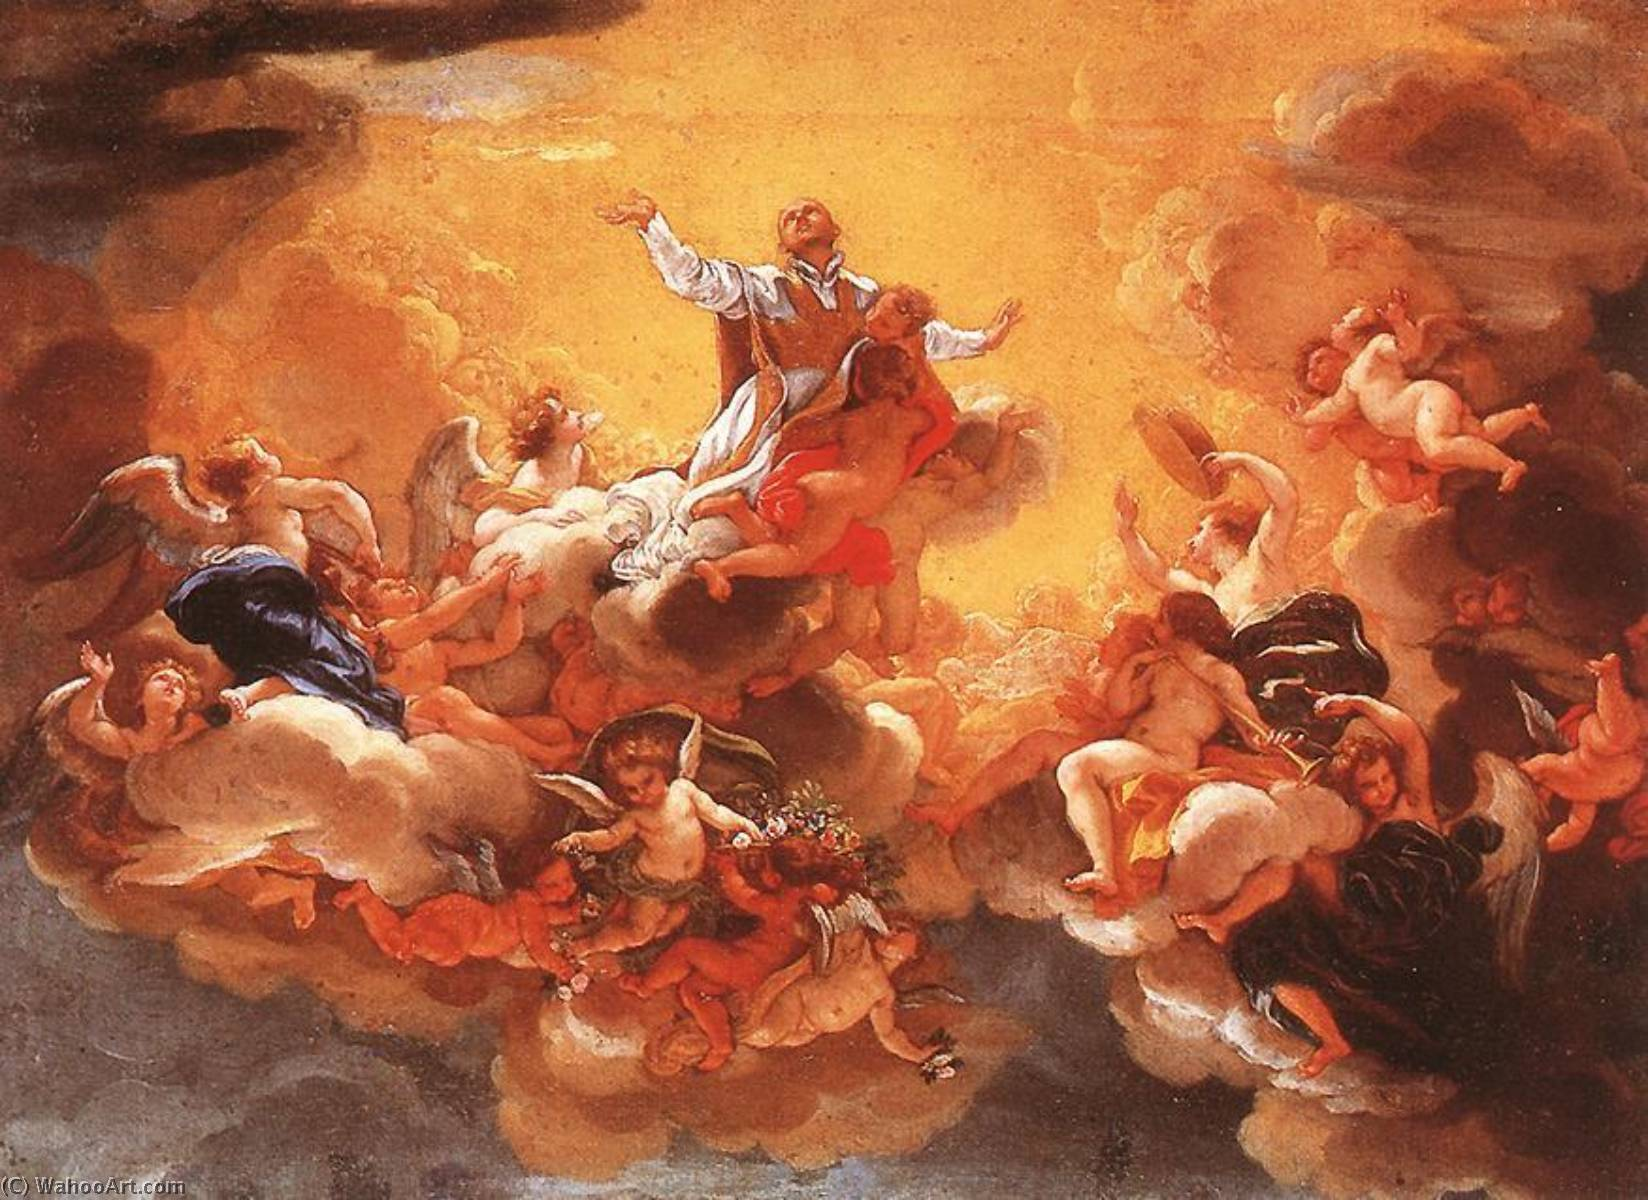 Apotheosis of St Ignatius, Oil On Canvas by Giovanni Battista Gaulli (Baciccio) (1639-1709)